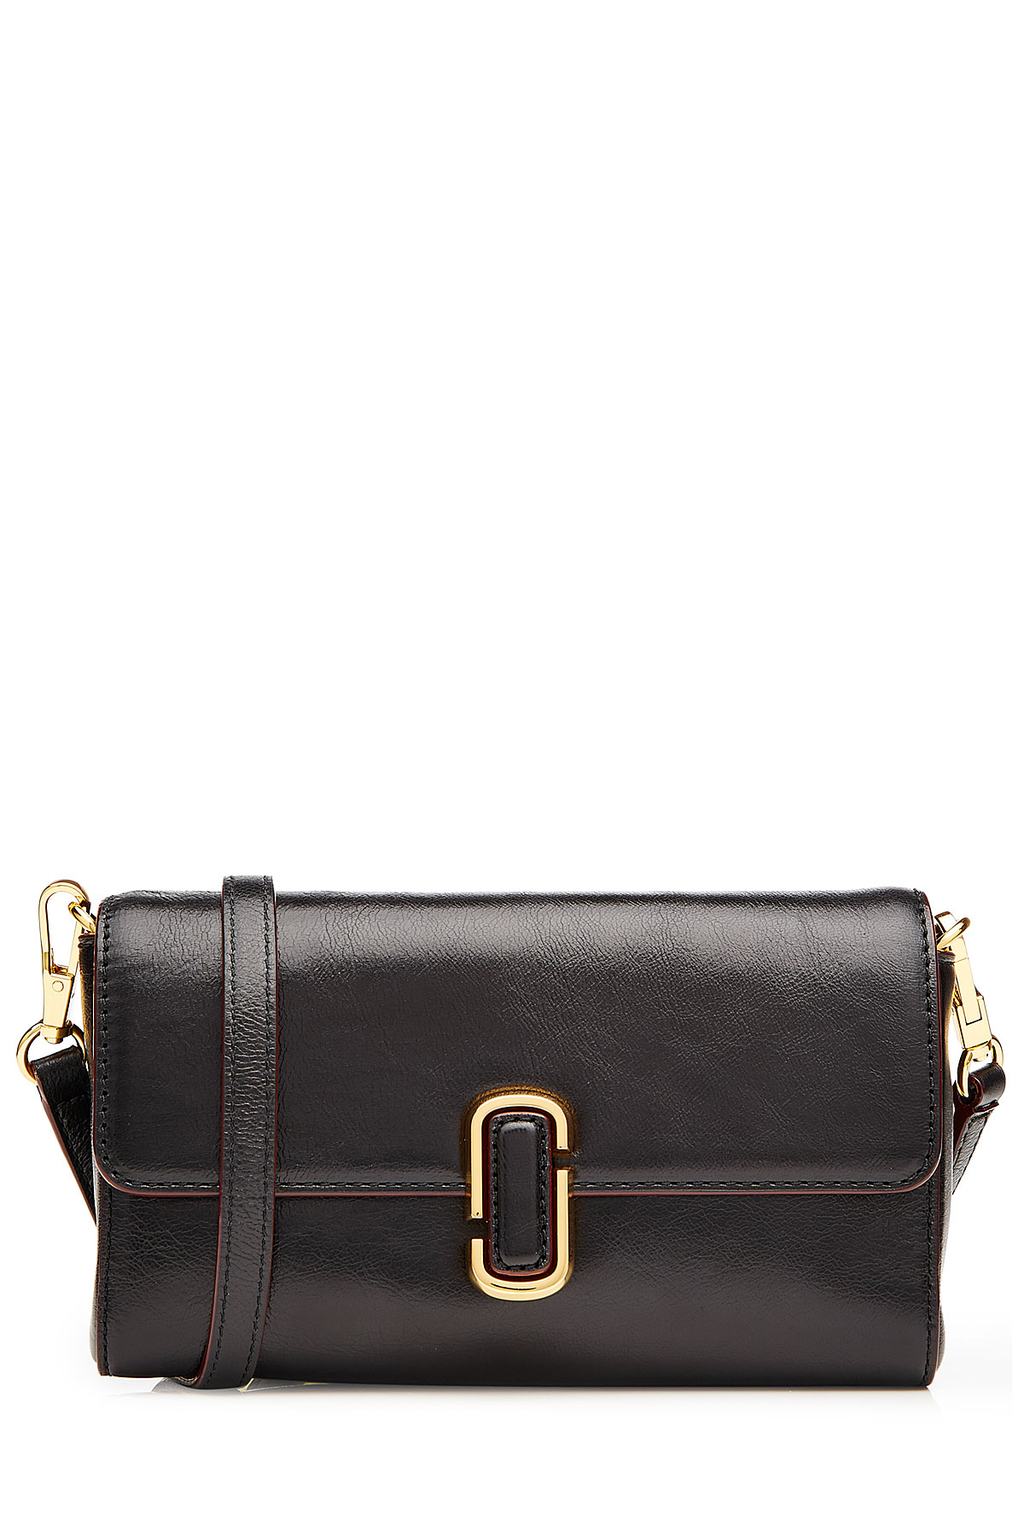 Leather Shoulder Bag With Contrast Trim Black - secondary colour: gold; predominant colour: black; occasions: casual, creative work; type of pattern: standard; style: shoulder; length: shoulder (tucks under arm); size: standard; material: leather; pattern: plain; finish: plain; season: s/s 2016; wardrobe: investment